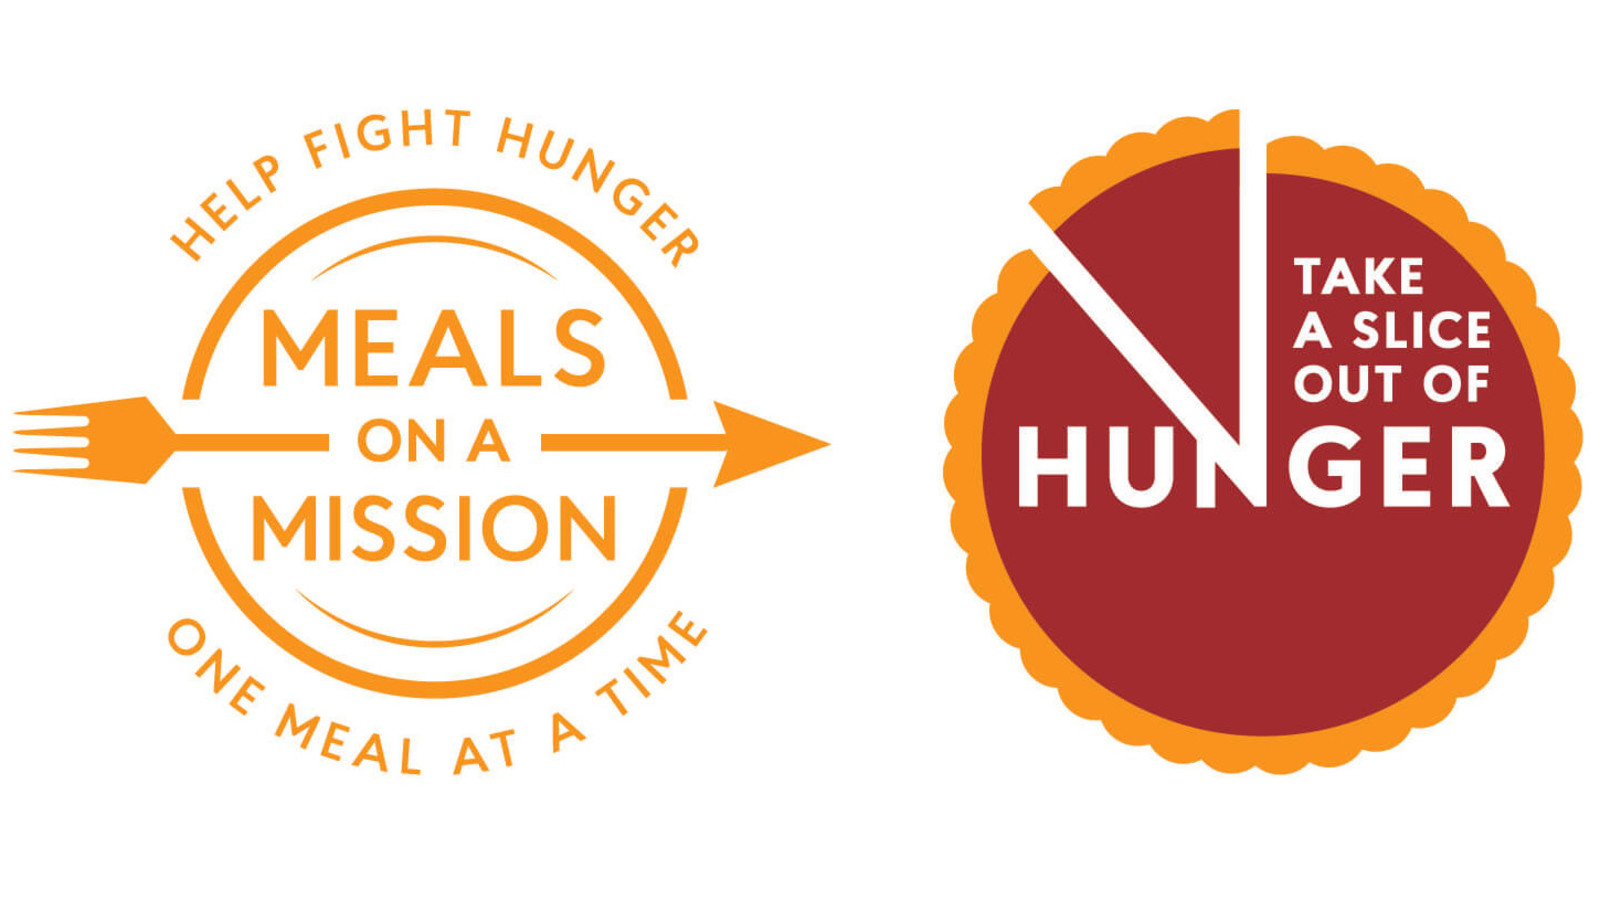 Meals On A Mission & Take A Slice Out Of Hunger logos